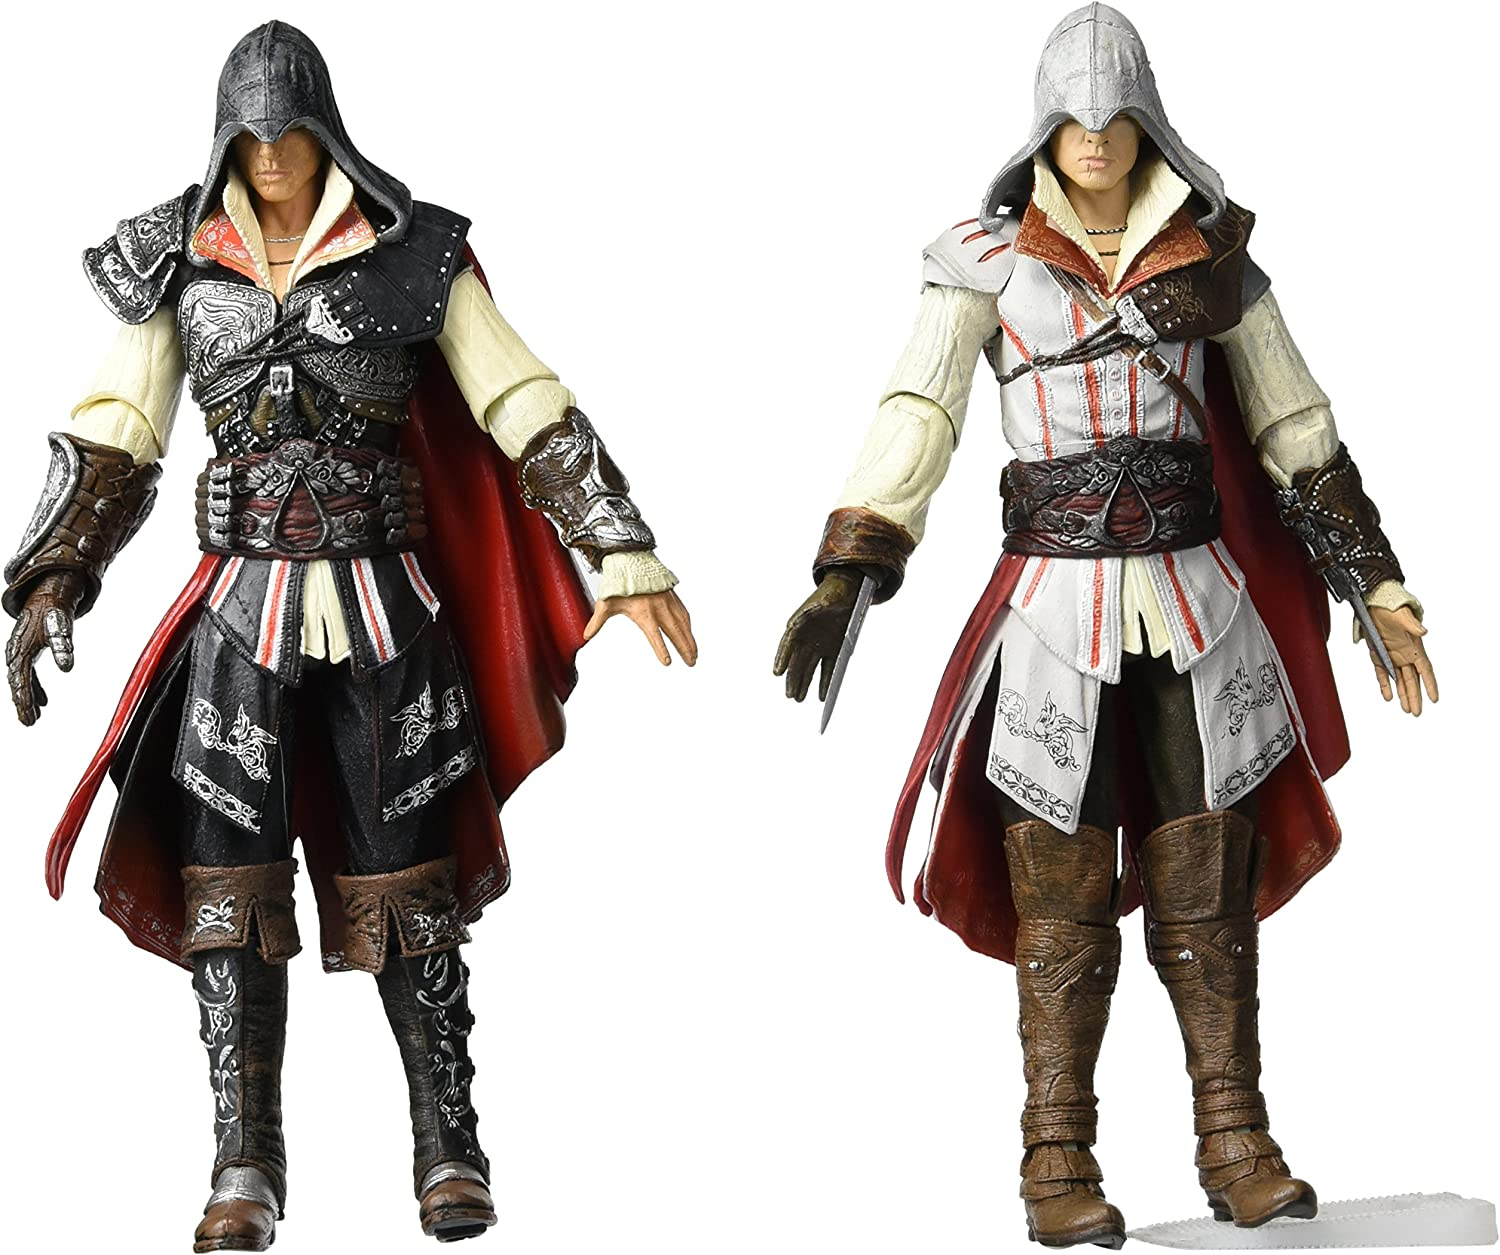 Amazon Com Neca Assassins Creed 2 Series 1 Set Of Both Action